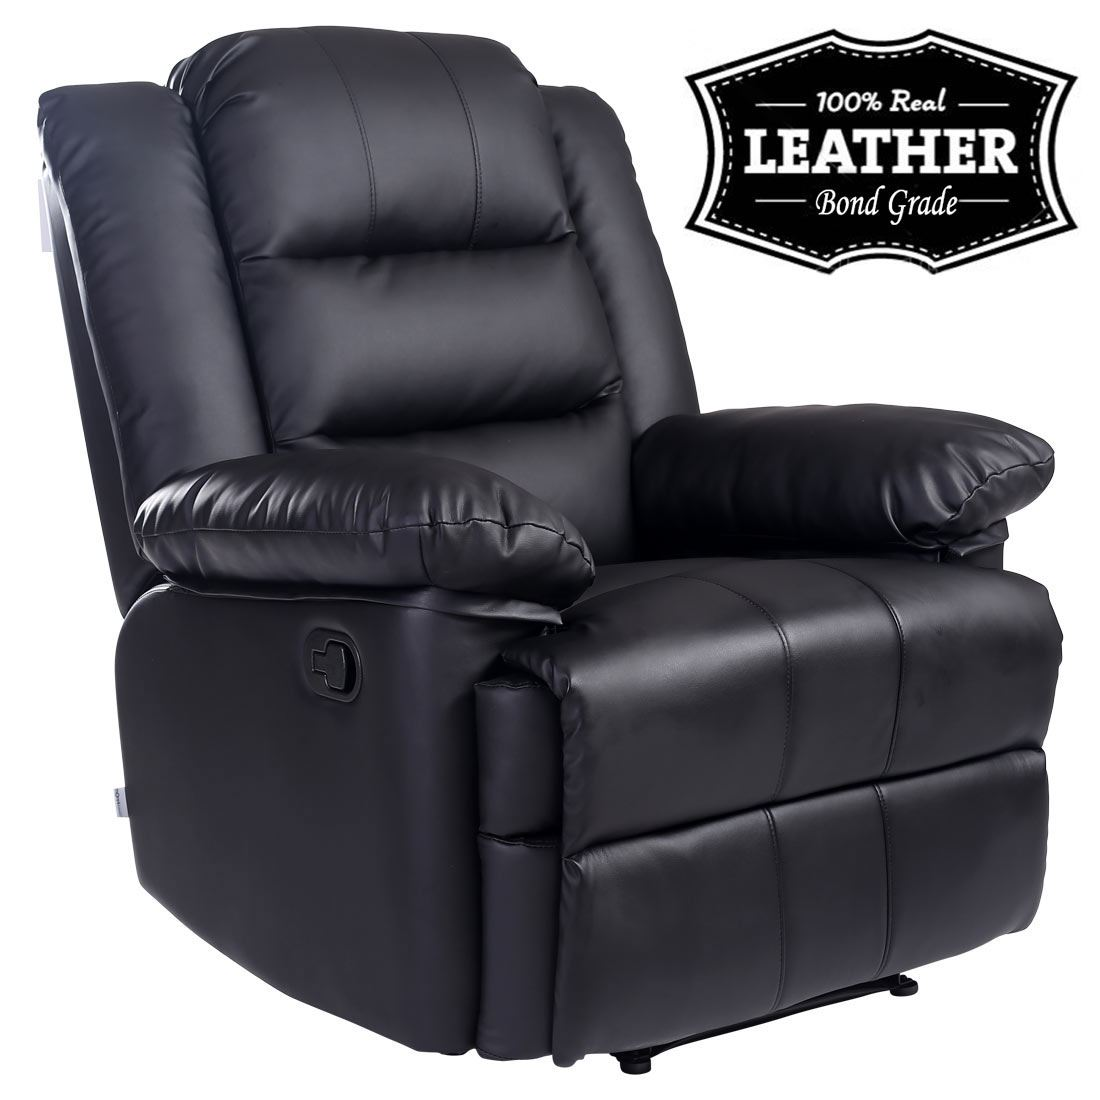 reclining gaming chair brown leather arm loxley recliner armchair sofa home lounge